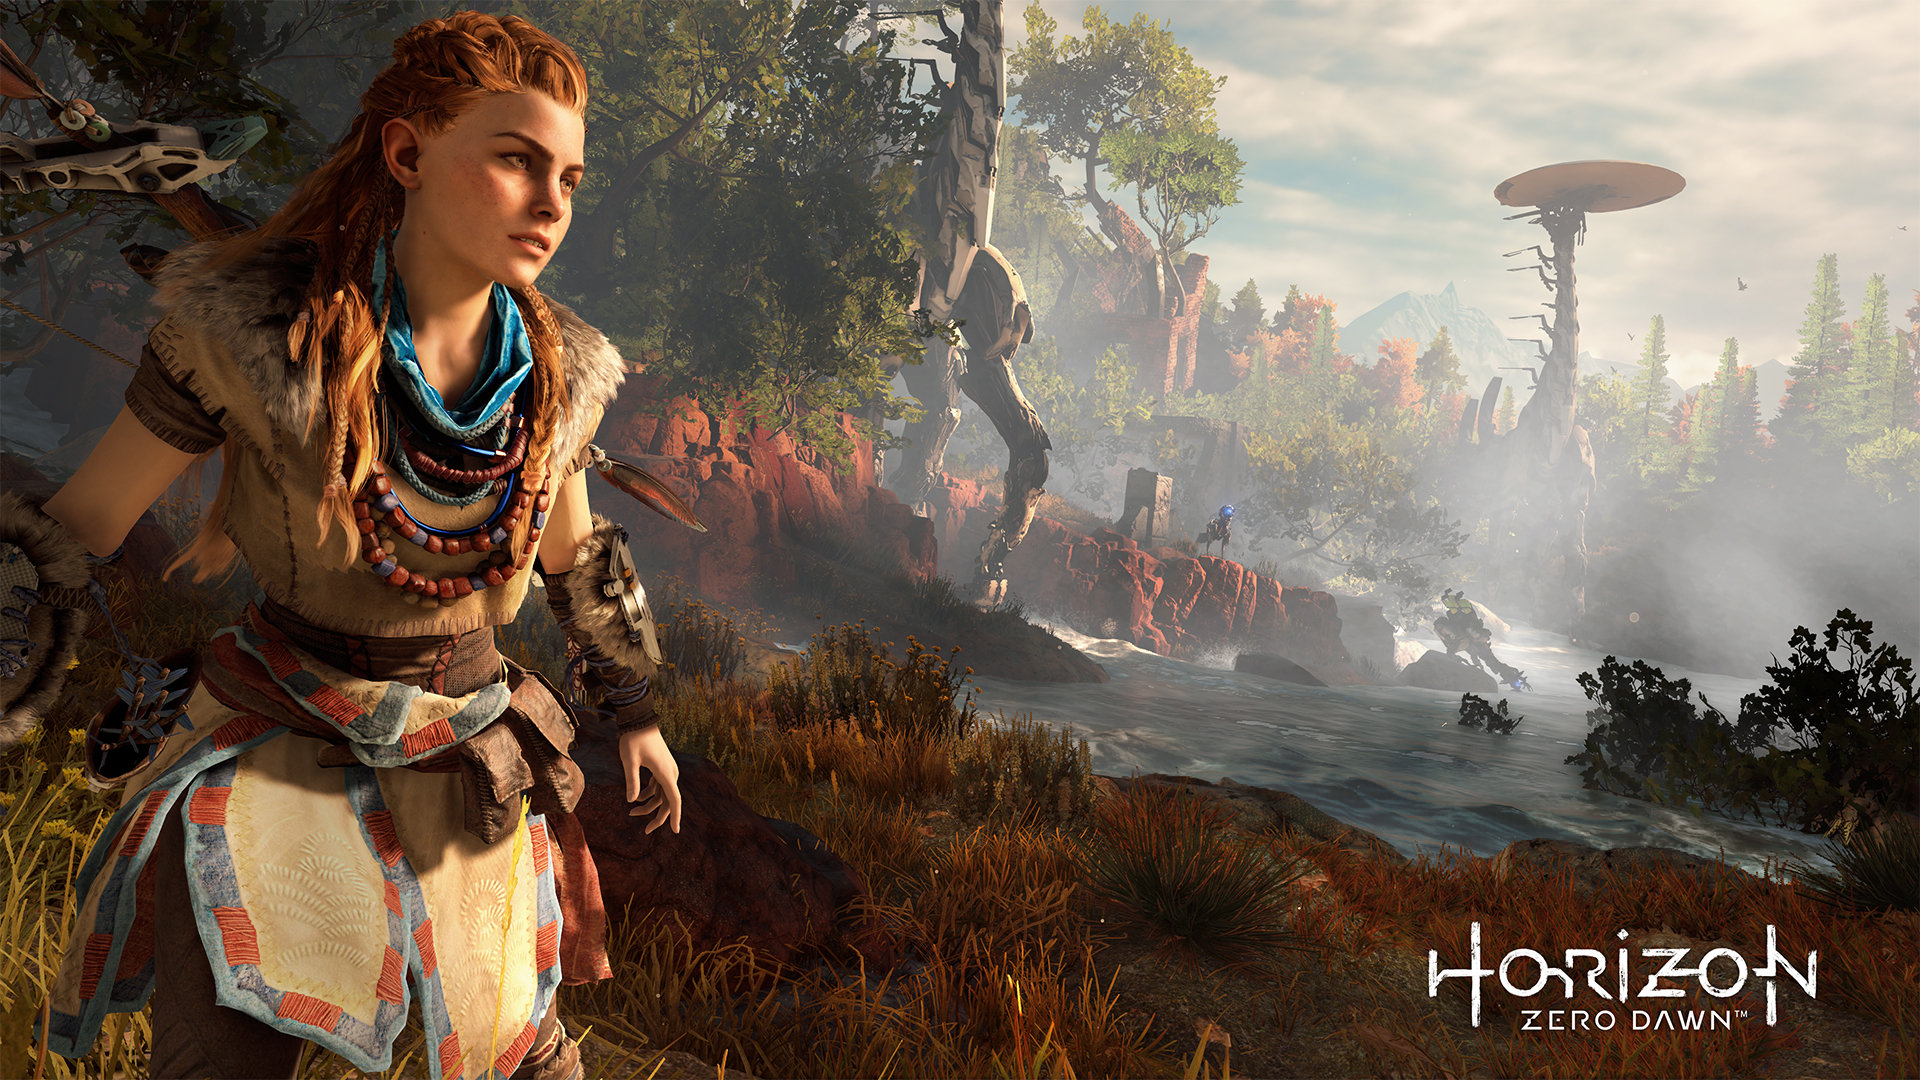 horizon-zero-dawn-screen-04-ps4-eu-16jun15.jpg